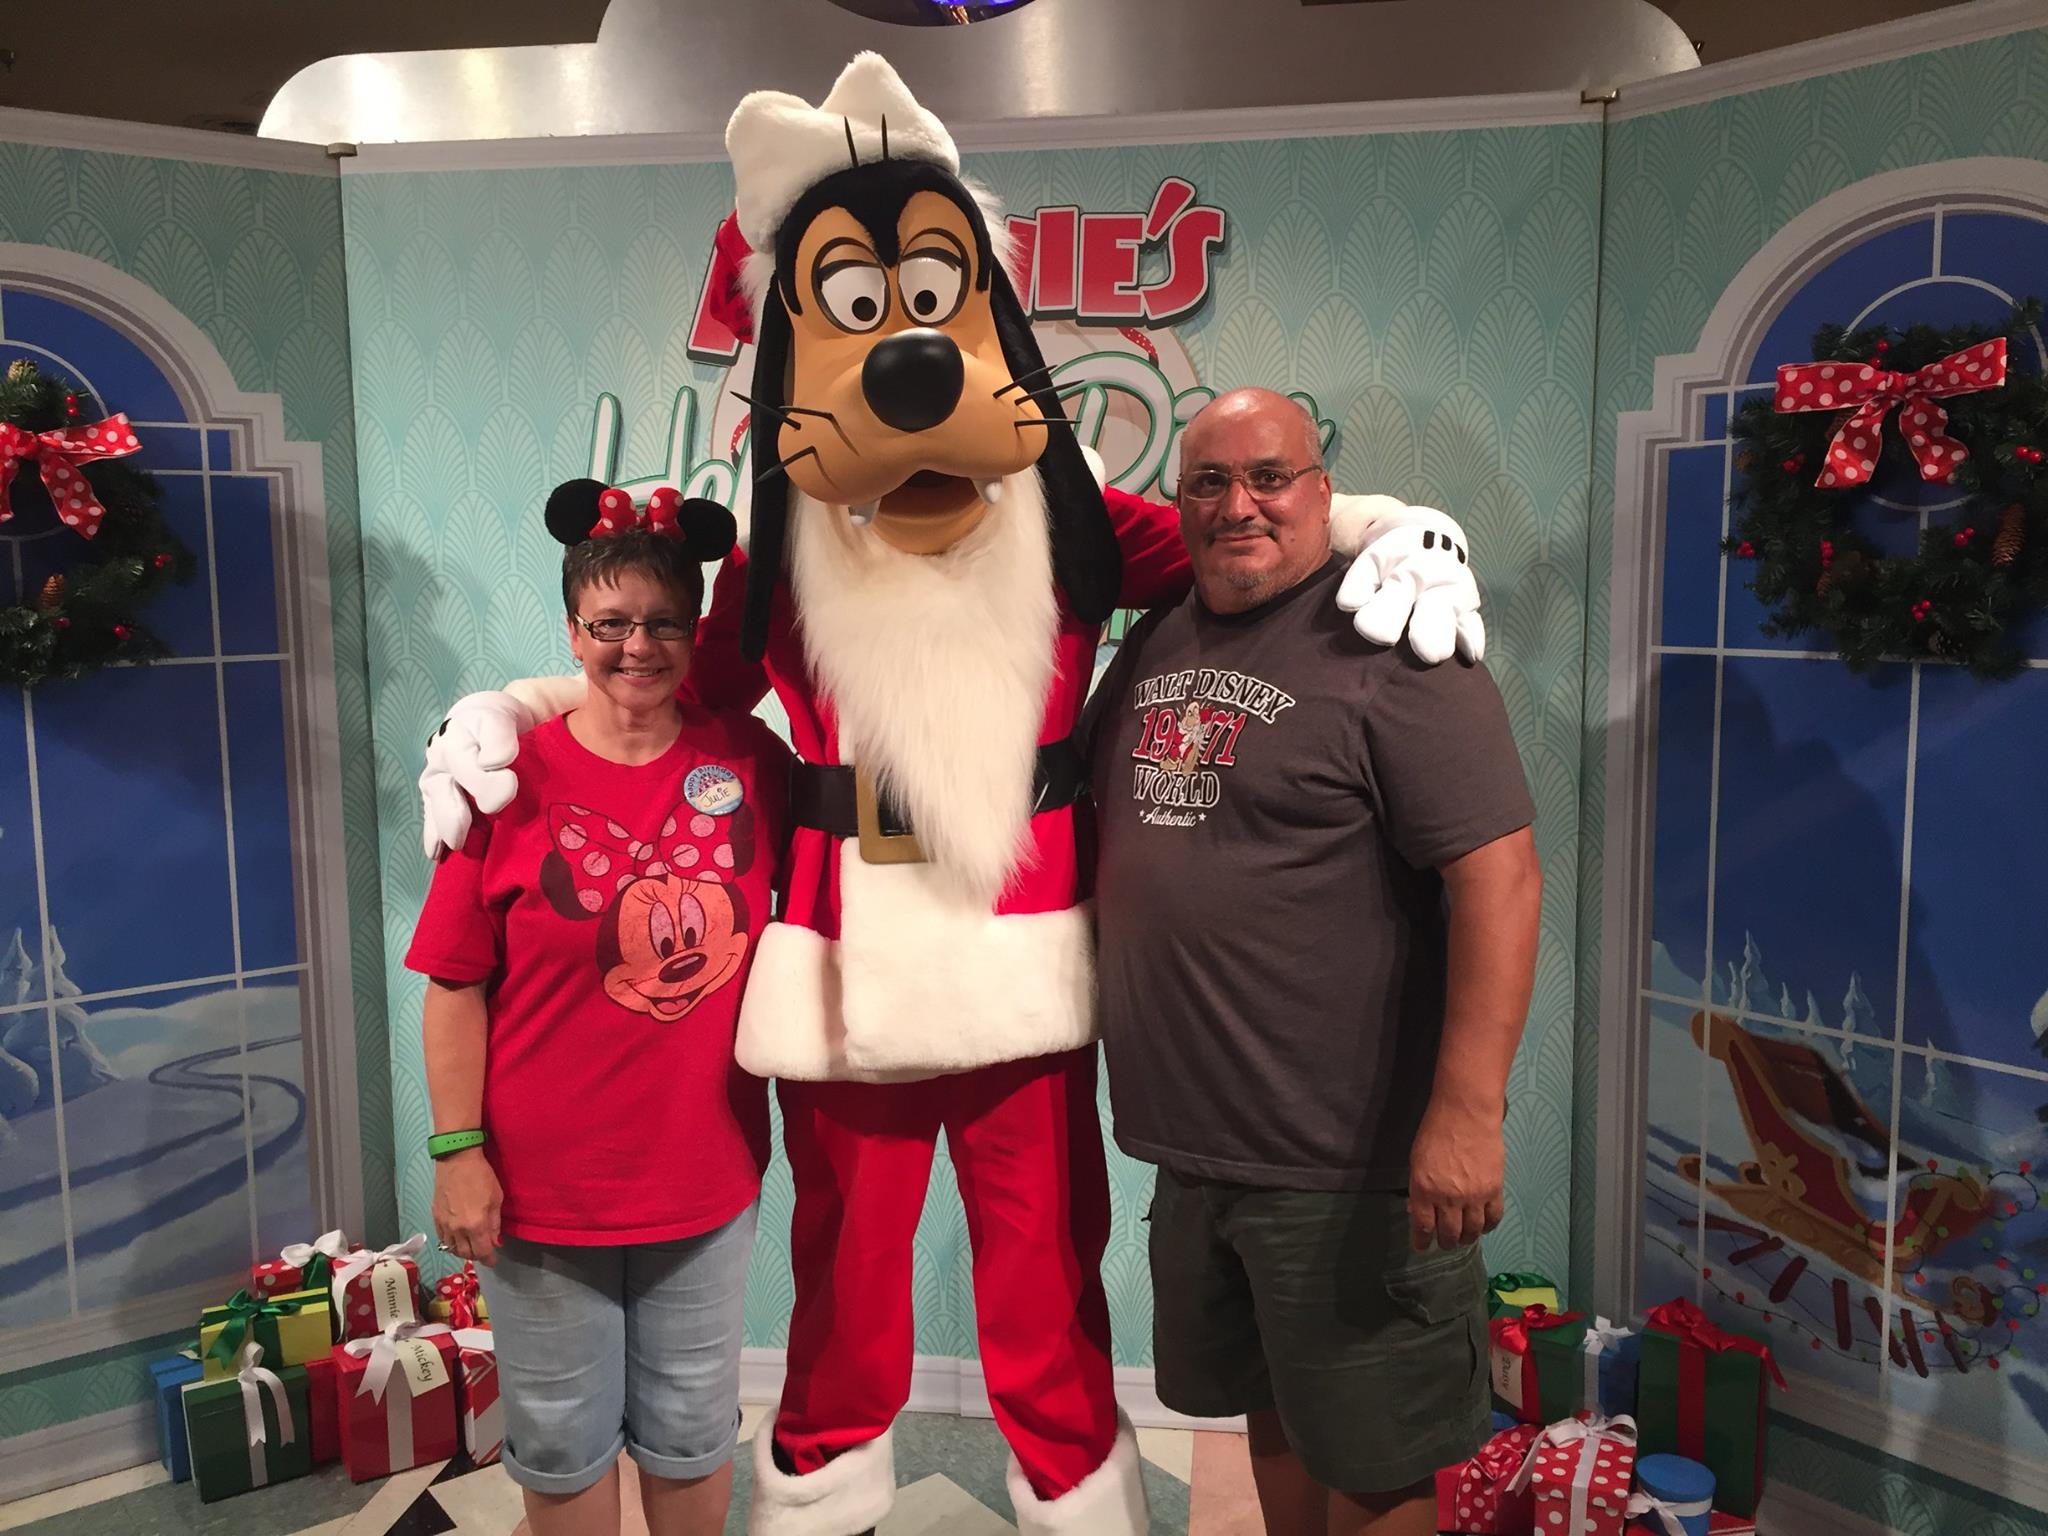 Disney world deliciousness hollywood vine the affordable mouse if you are looking for a fun character dining experience head to hollywood vine in hollywood studios where you can meet a variety of different m4hsunfo